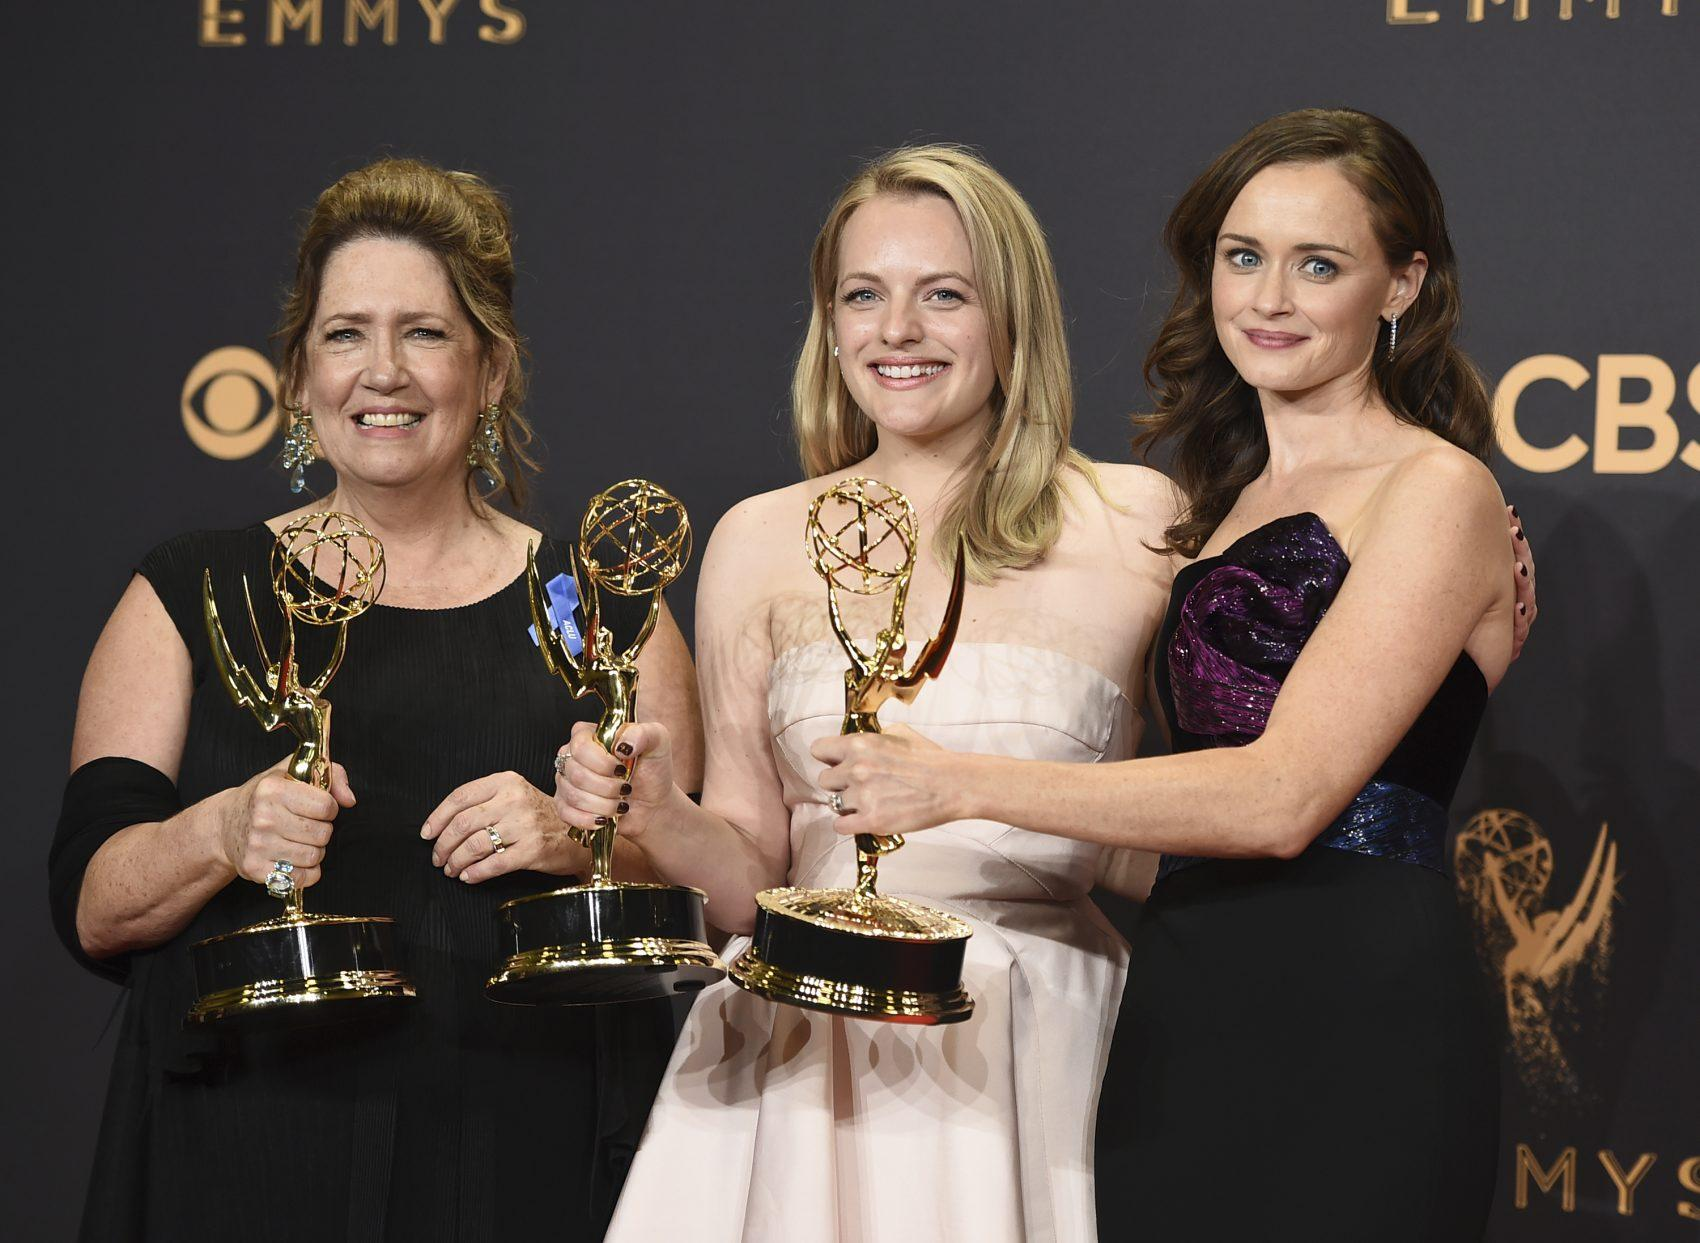 Emmys 2017: Winners Of The 69th Annual Emmy Awards